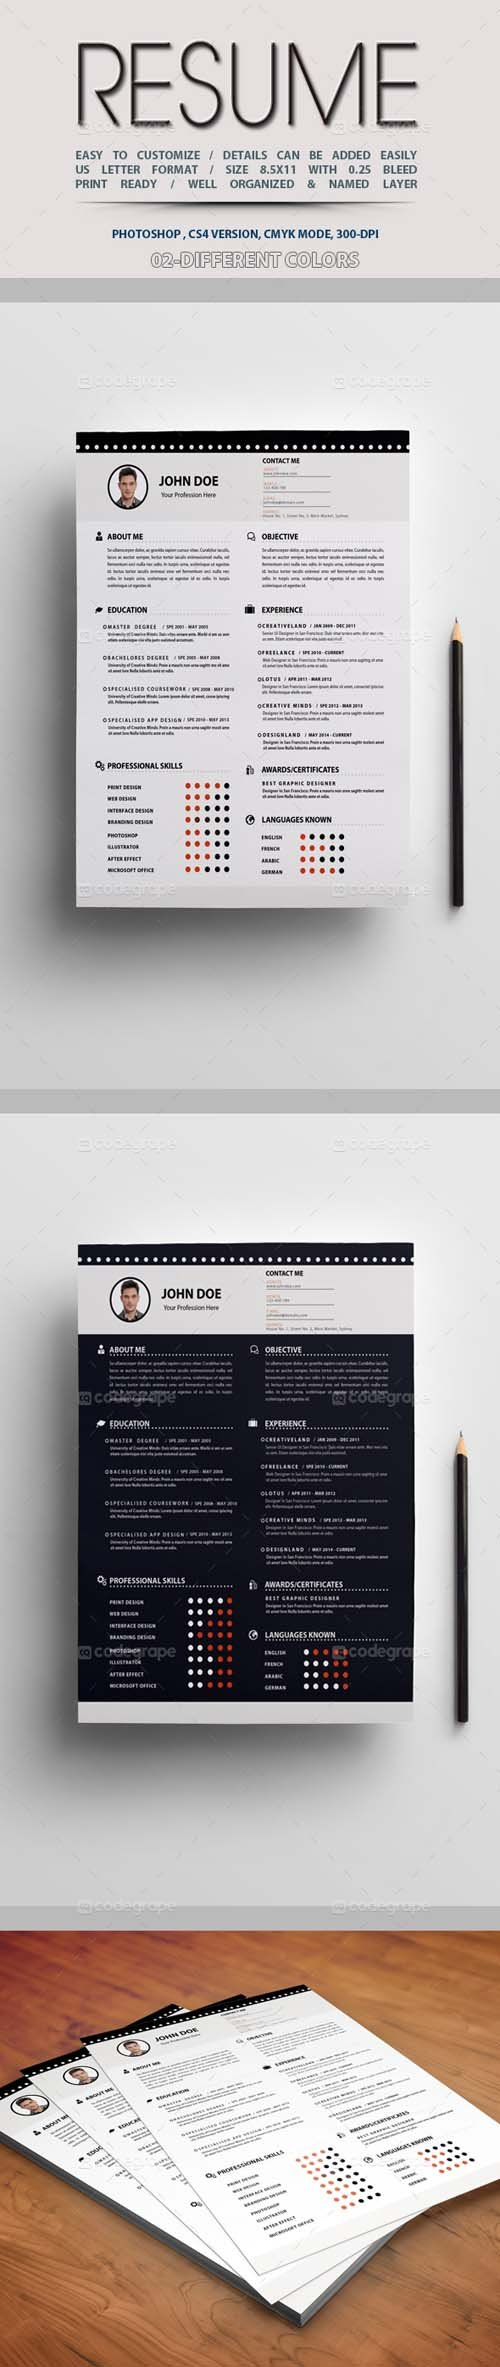 PSD - Resume Template 2 Colors 5236